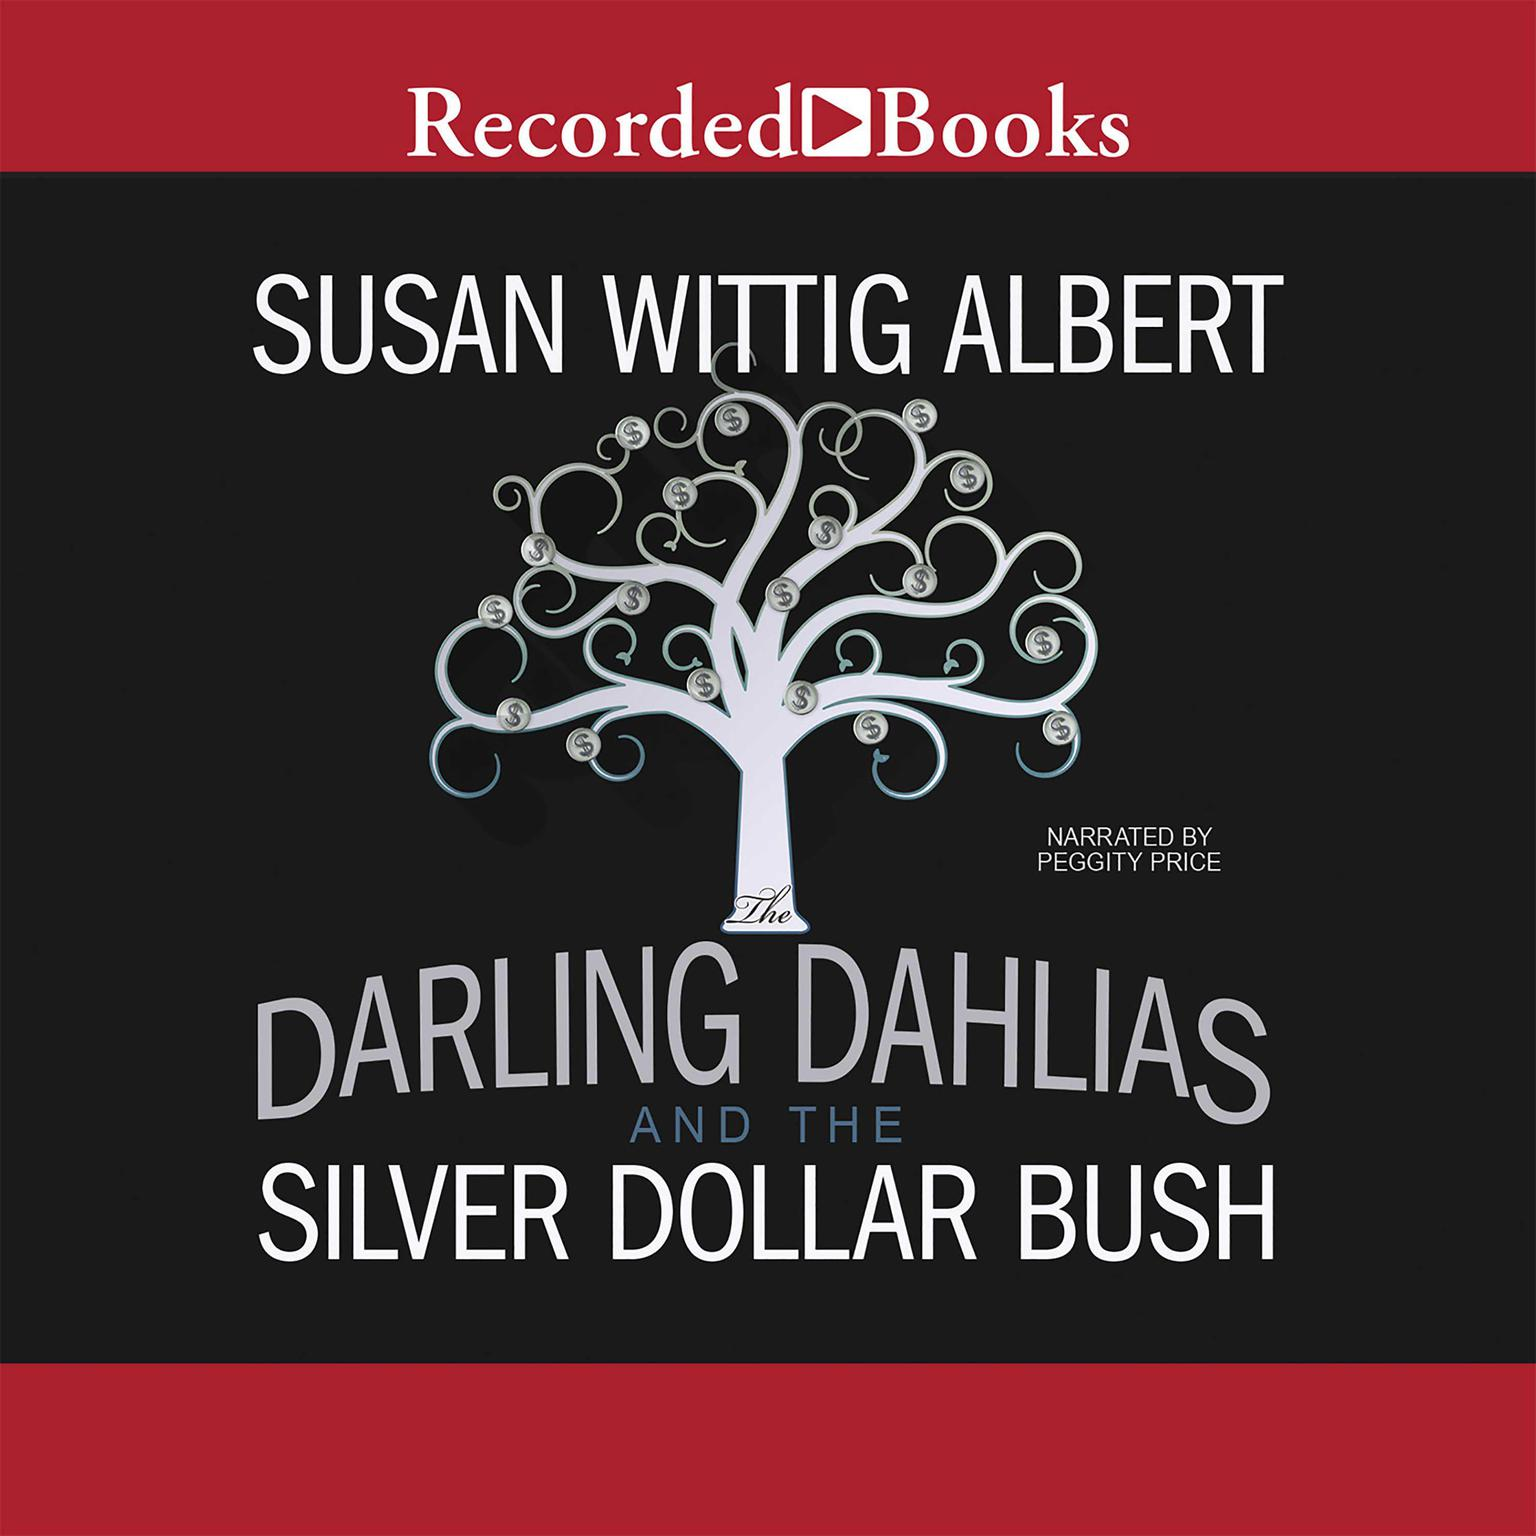 Printable The Darling Dahlias and the Silver Dollar Bush Audiobook Cover Art